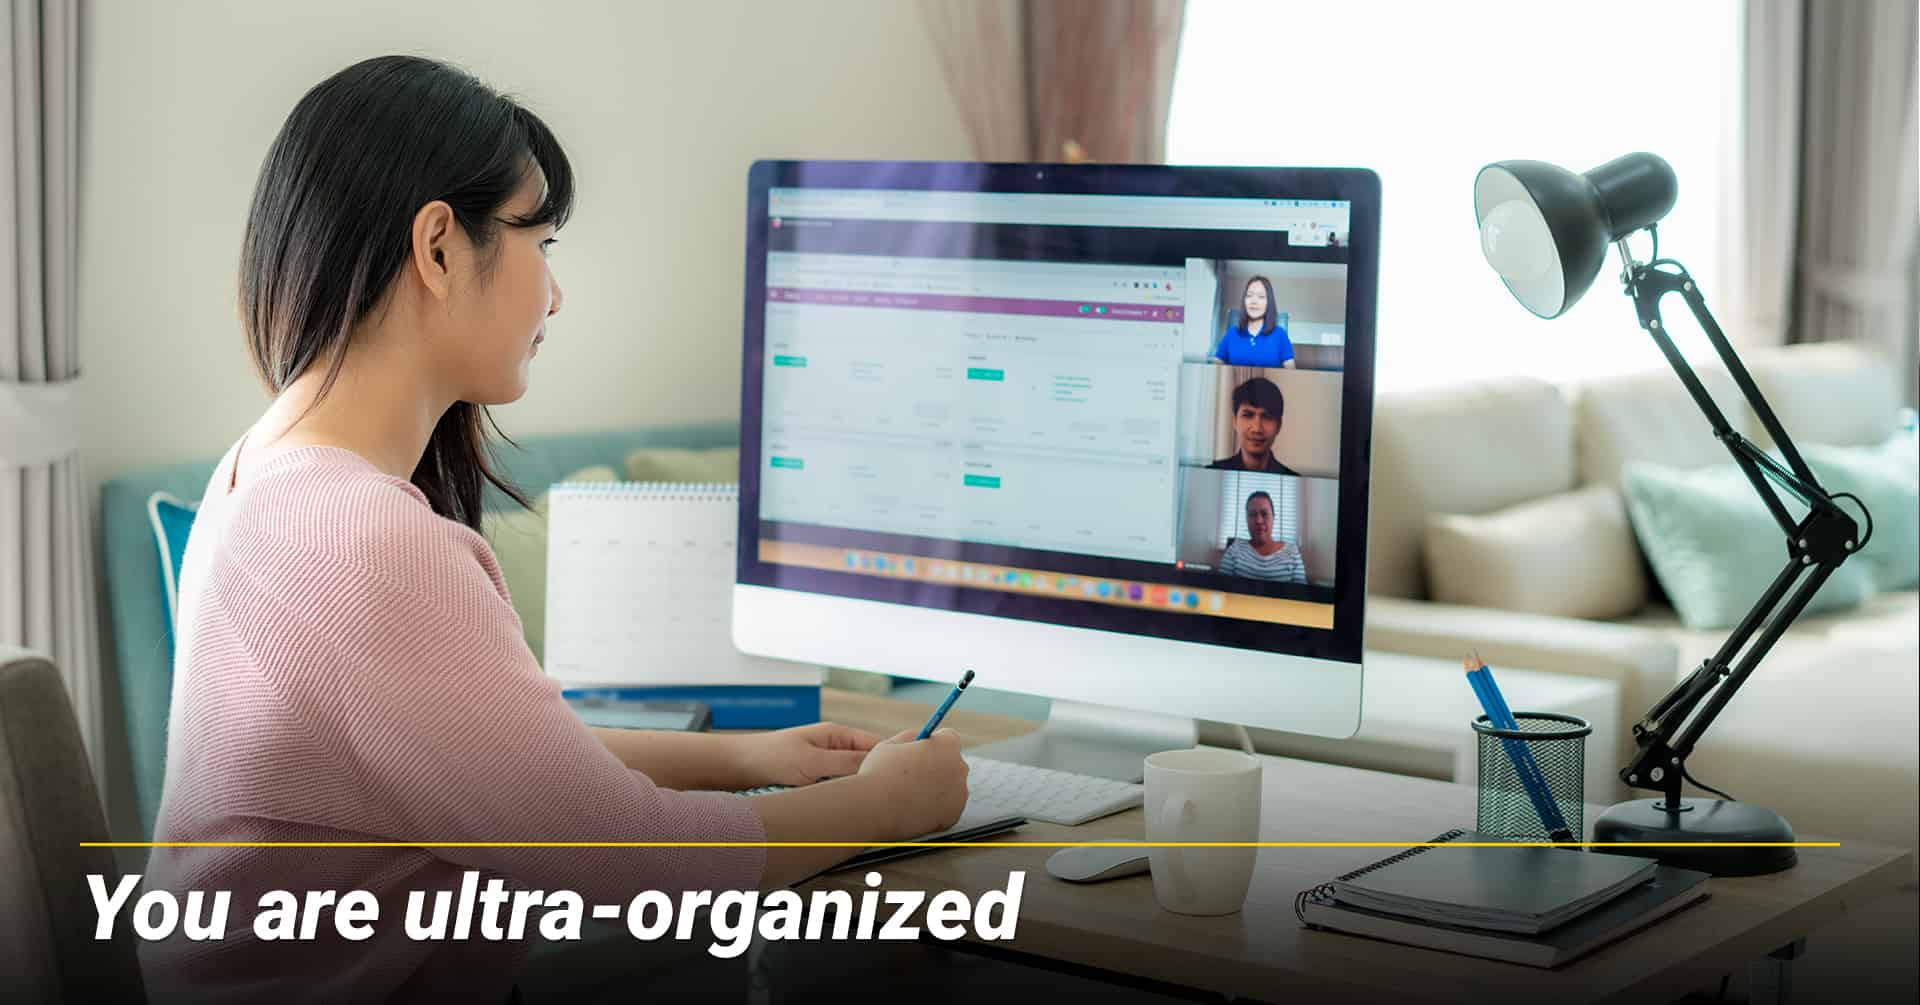 You are ultra-organized